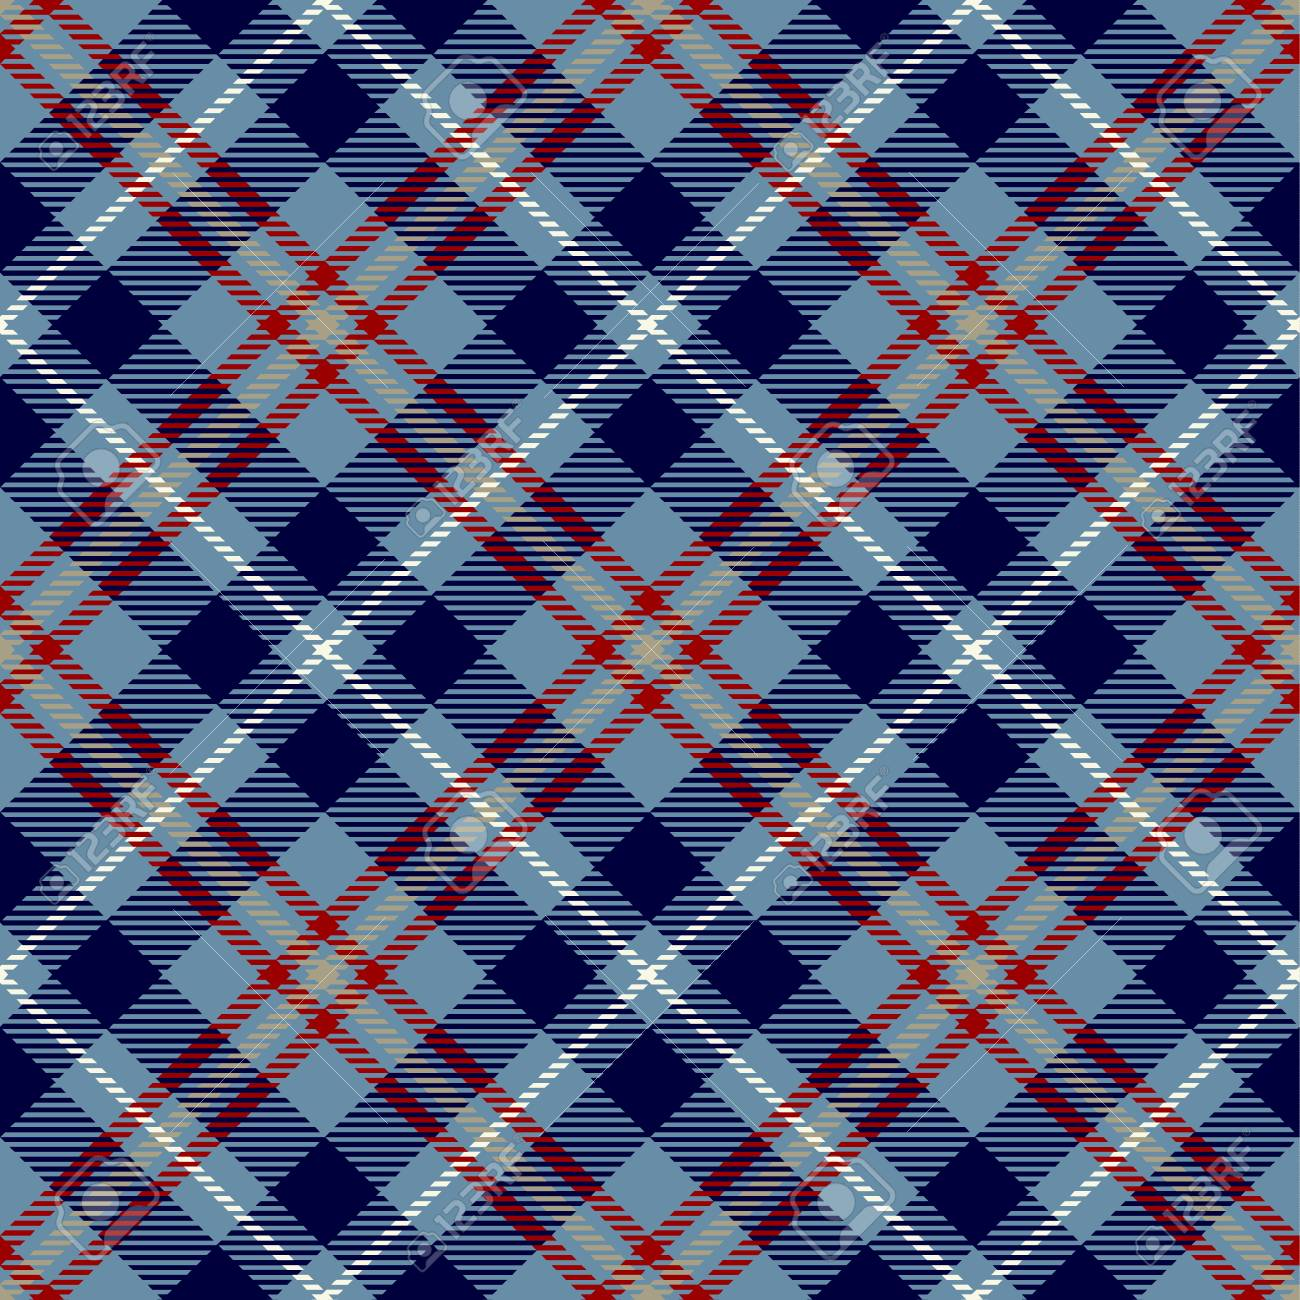 Tartan Seamless Pattern Background Red White Blue And Camel Beige Plaid